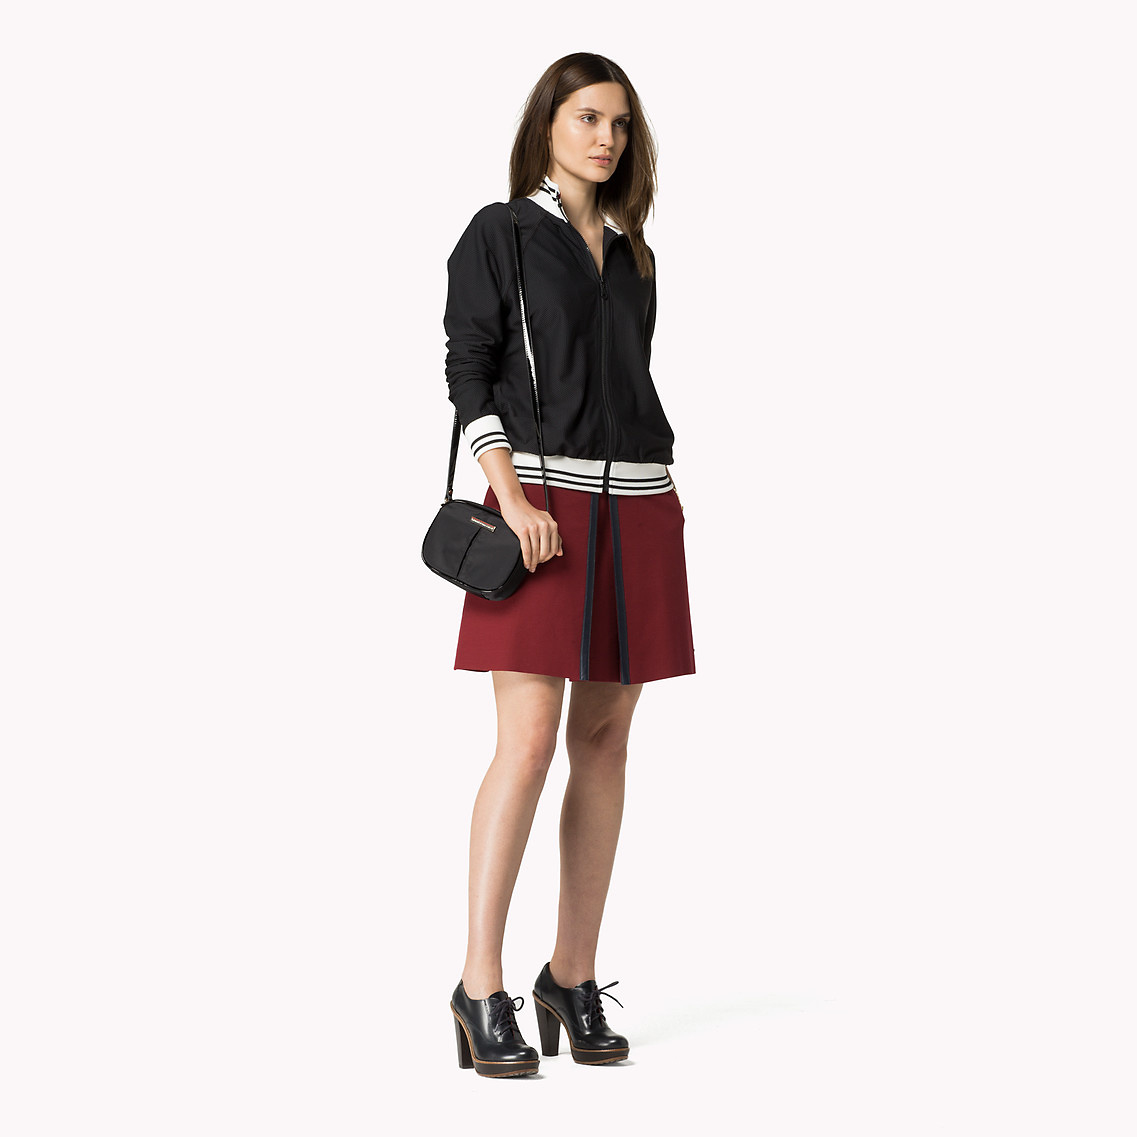 07a80f863d3b Tommy Hilfiger Chico Mini Crossover in Black - Lyst